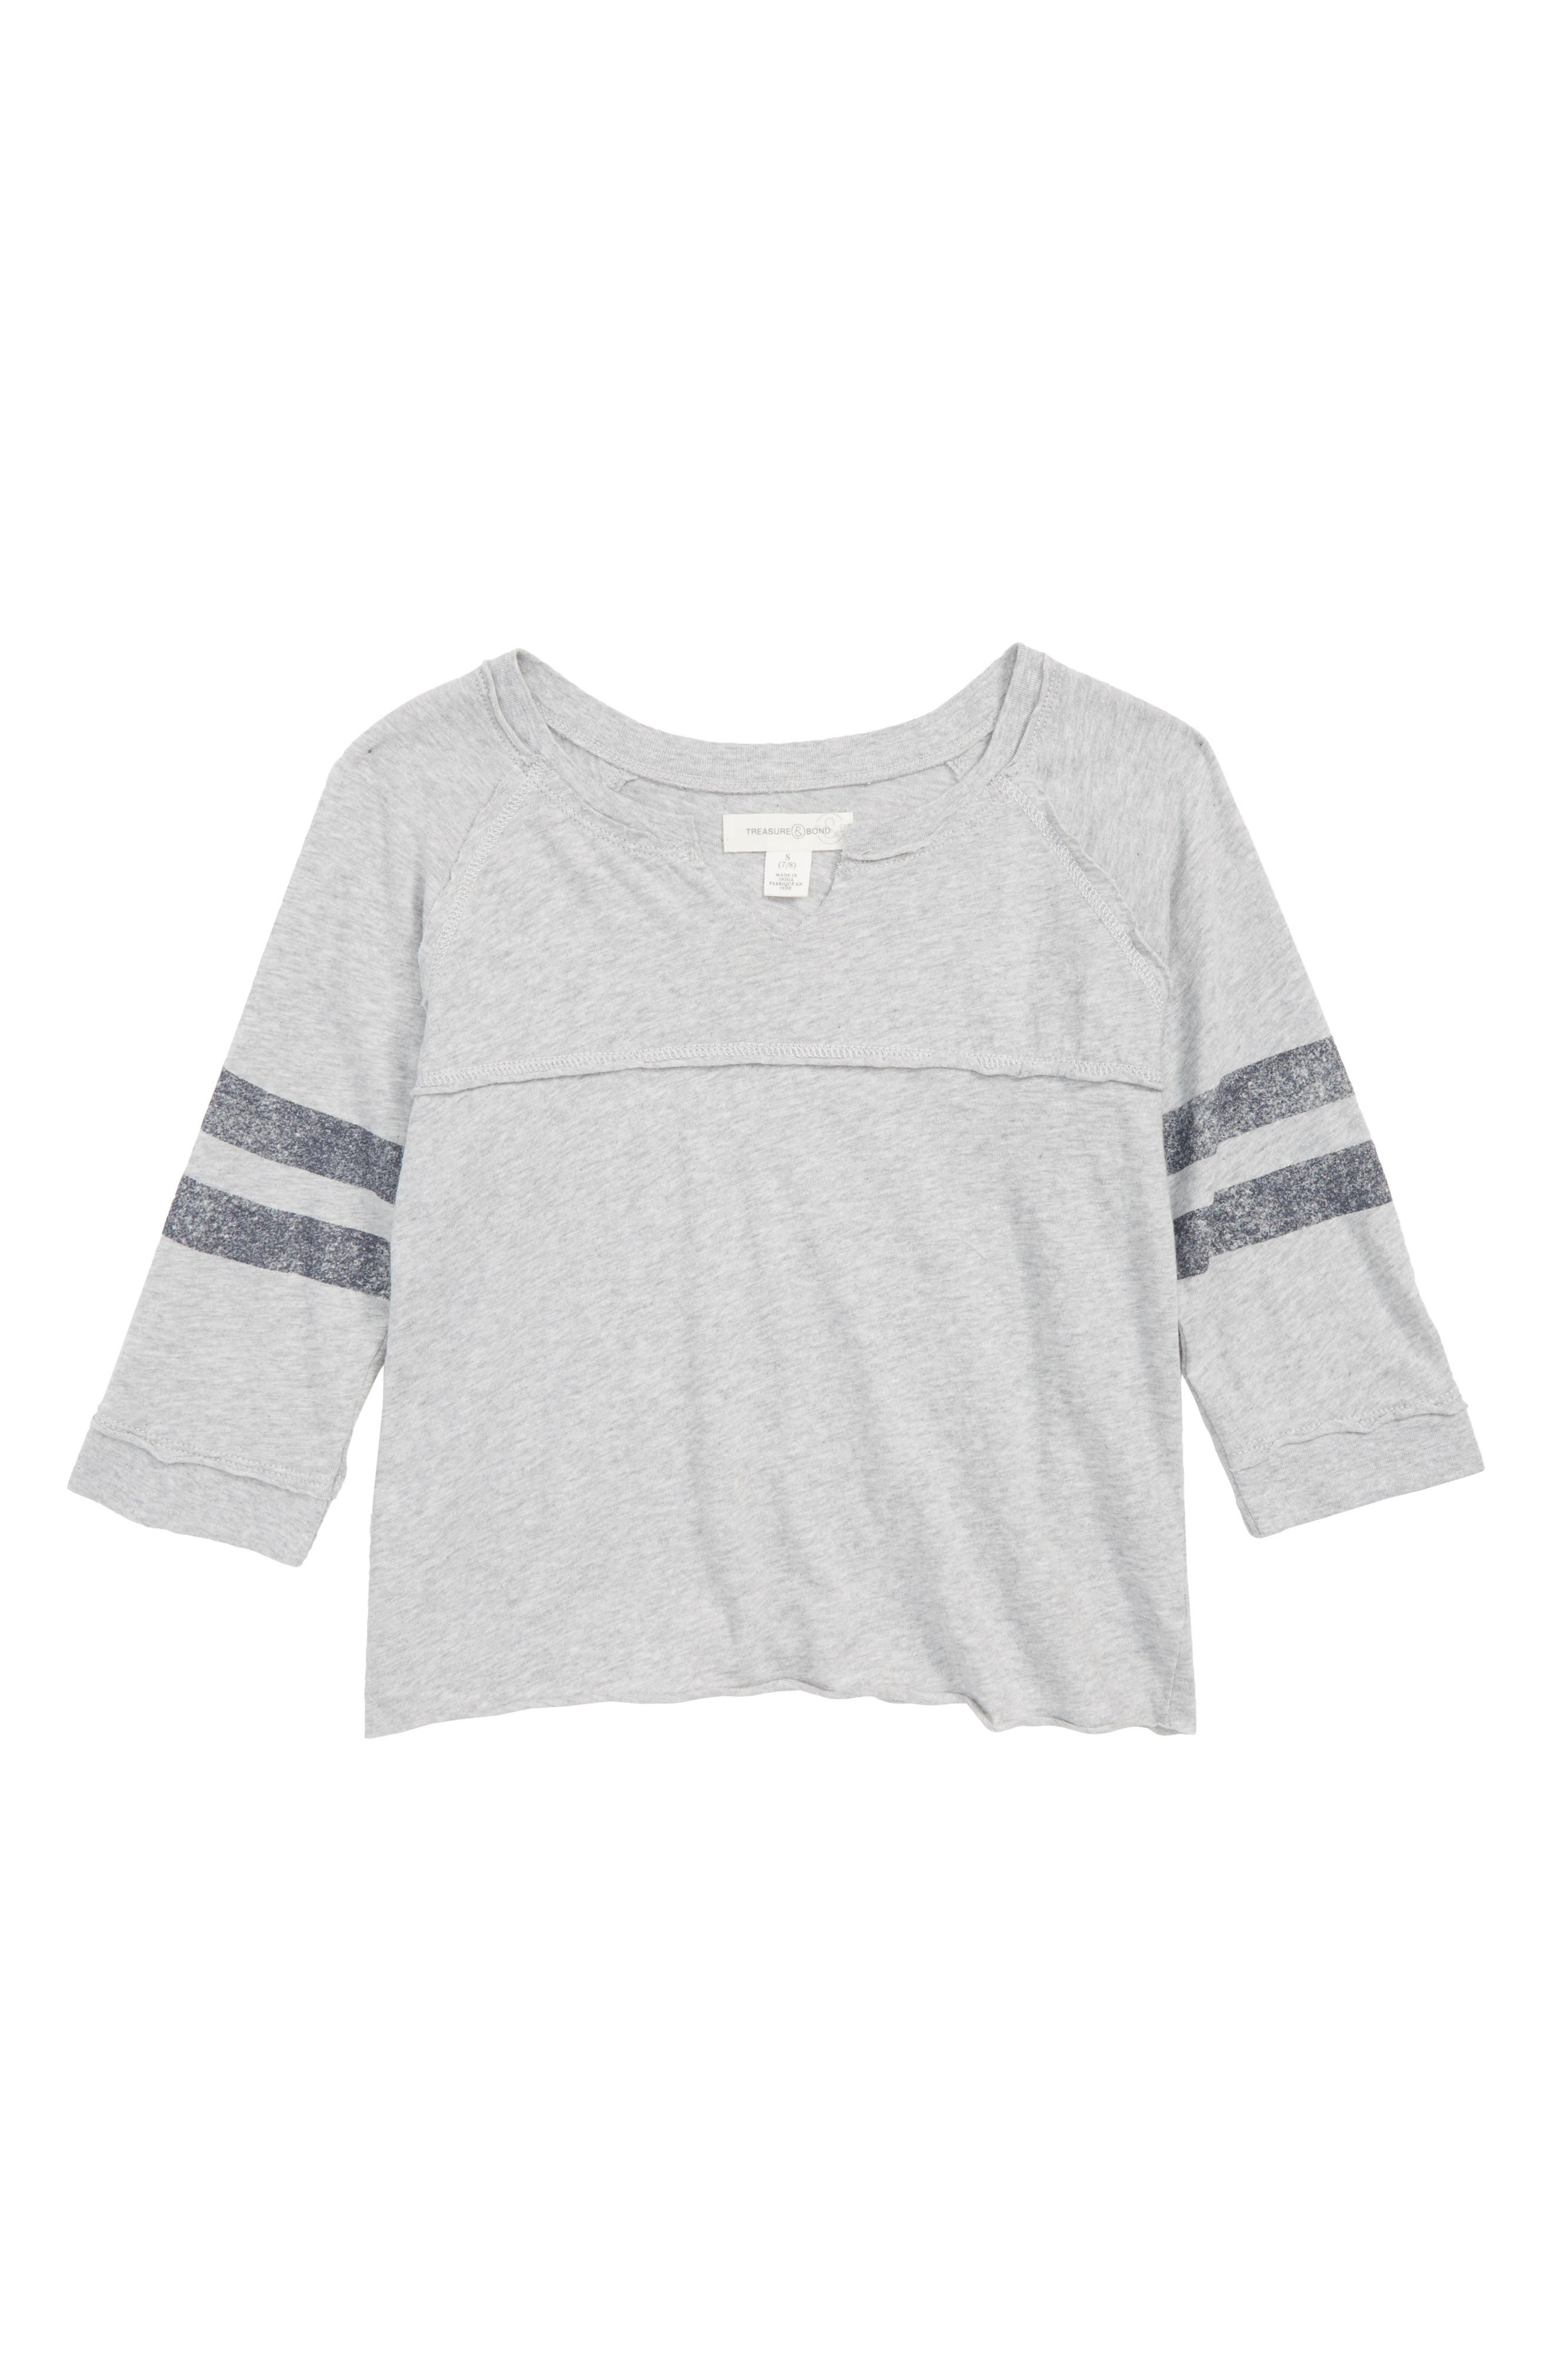 Sporty Vintage Tee,                             Main thumbnail 1, color,                             Grey Ash Heather